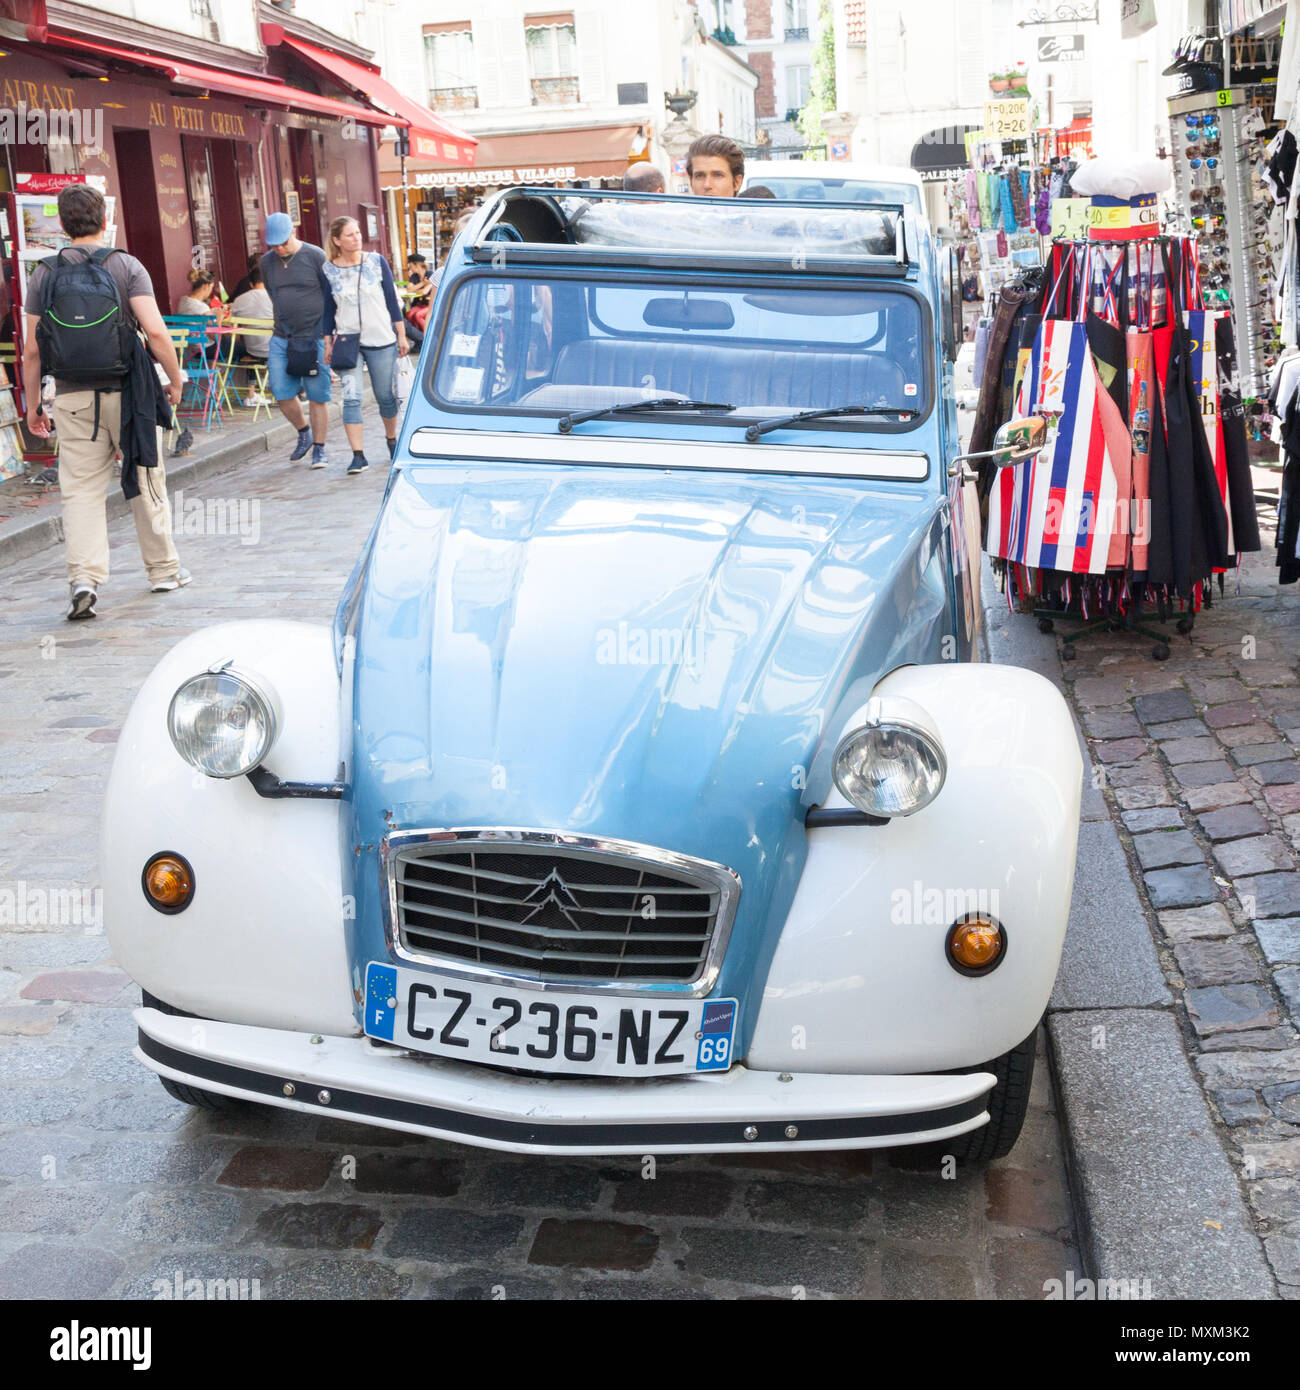 classic citroen 2cv vintage french car stock photos  u0026 classic citroen 2cv vintage french car